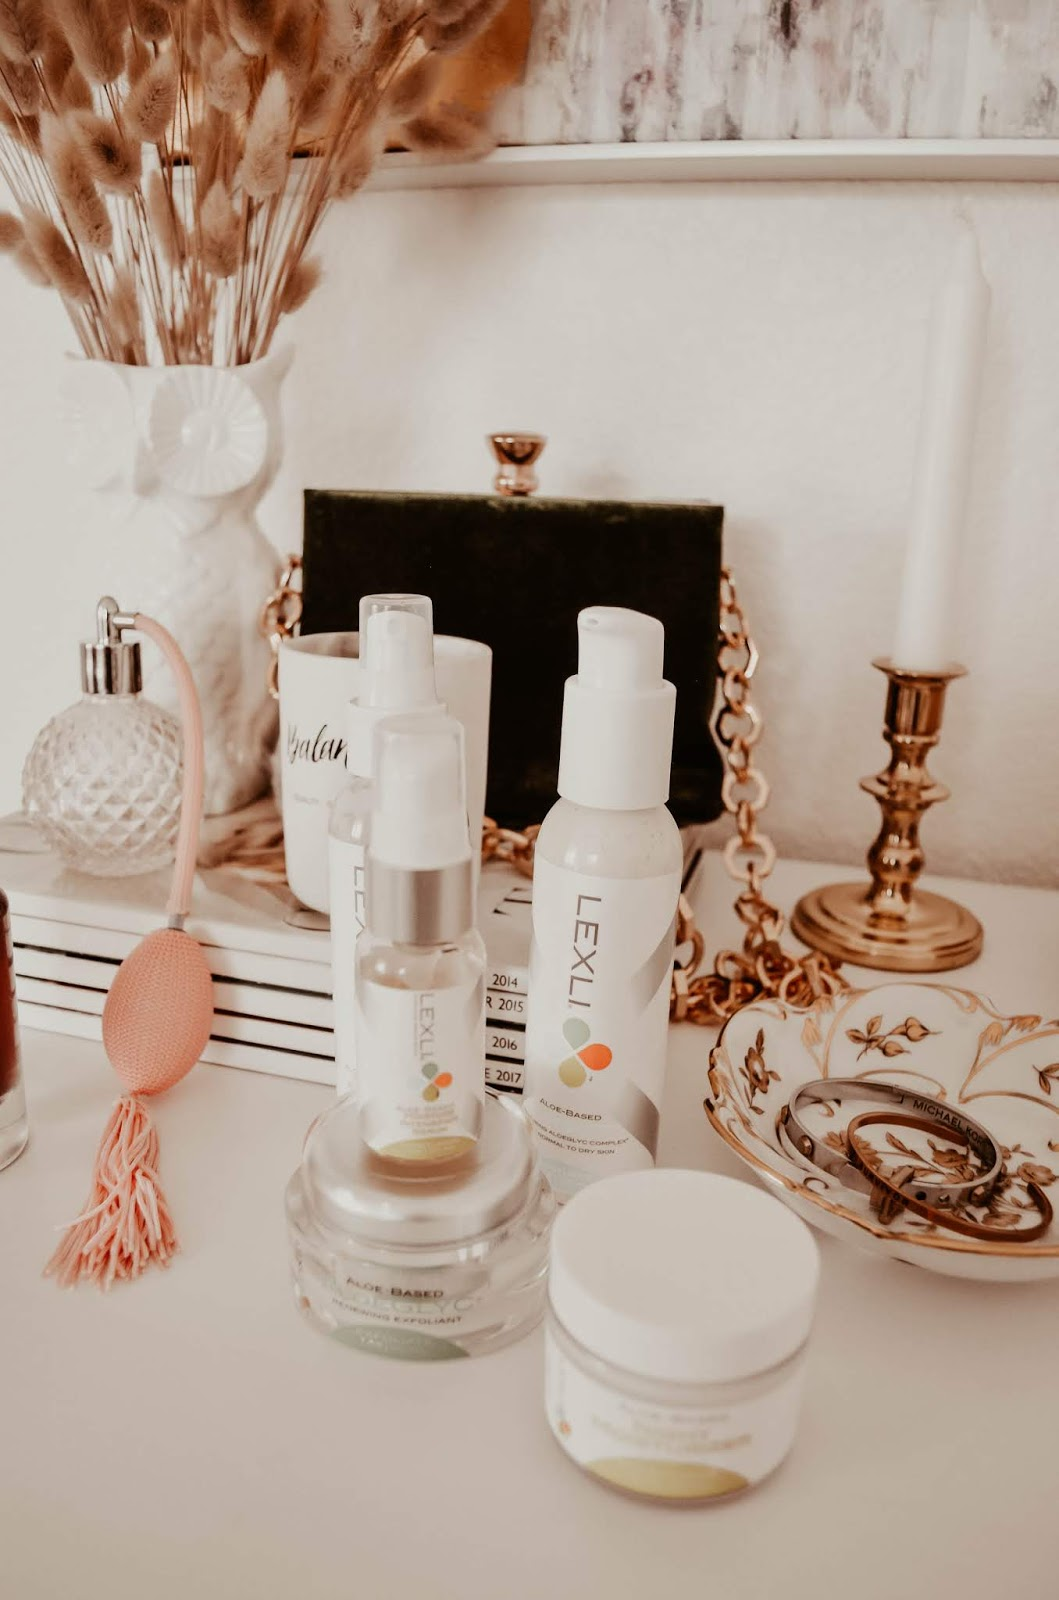 new-fall-season-skincare-secrets-beauty-products-giveaway-great-skincare-beauty-giveaway